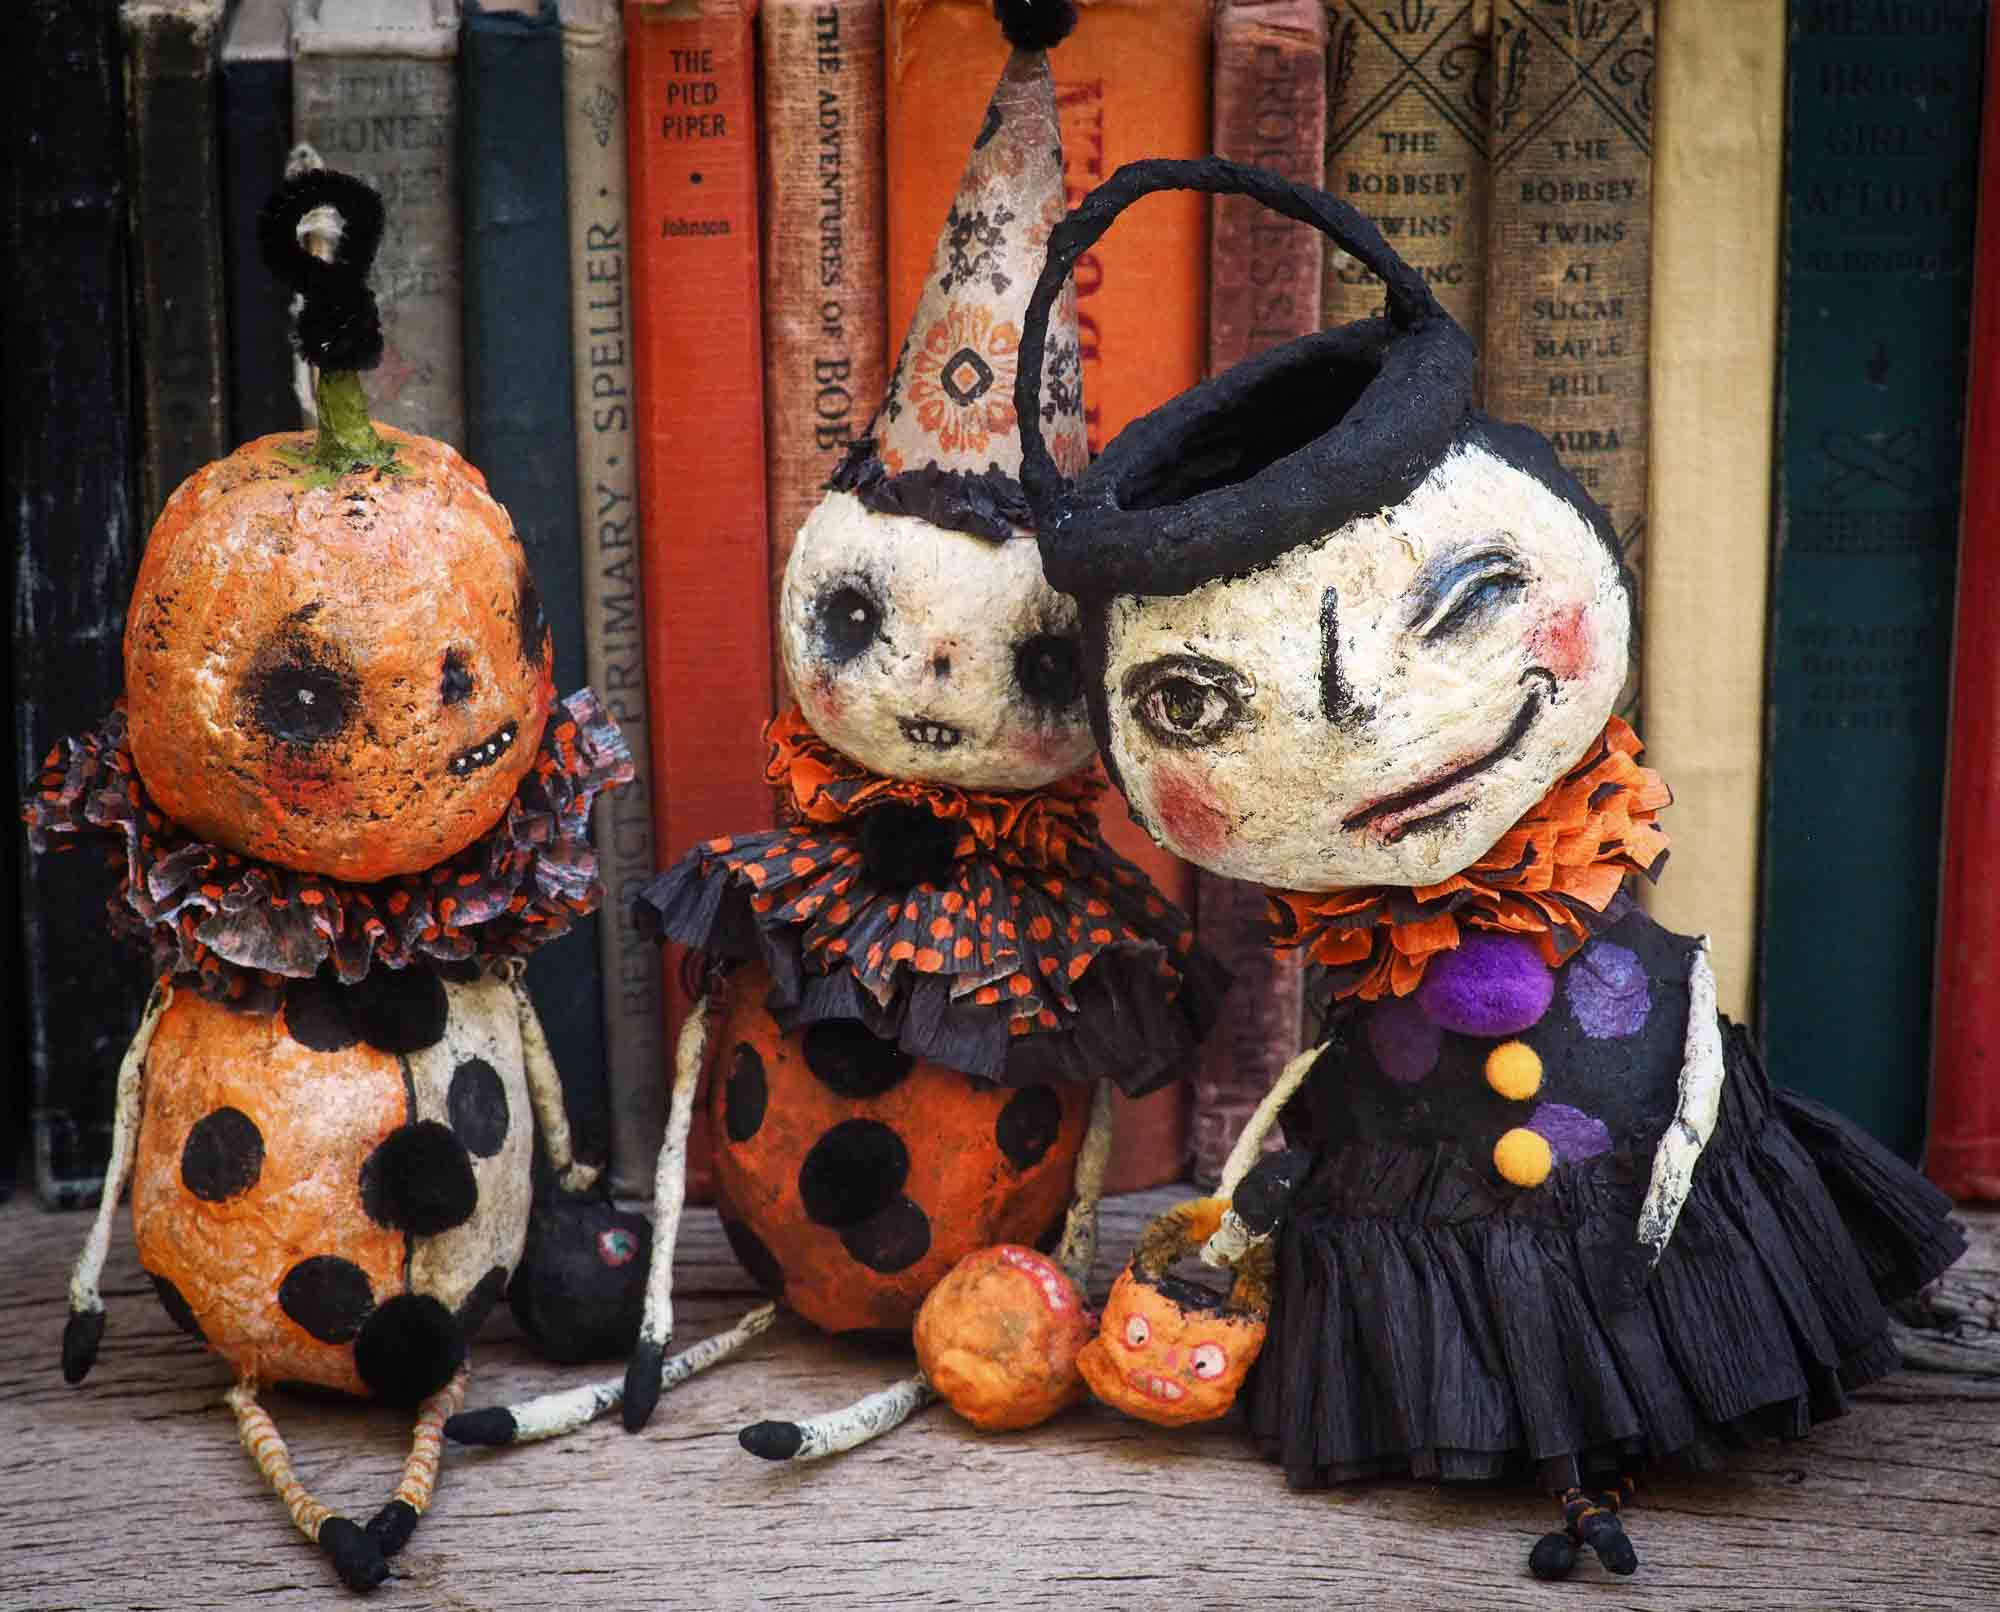 Danita Art thought about the Christmas carol story and decided to make a Halloween version with ghosts, ghouls, pumpkins, jack-o-lanterns, witches, cauldrons and more night creatures. This handmade art doll ornament for Christmas or Halloween trees is made with Spun cotton and paper clay,